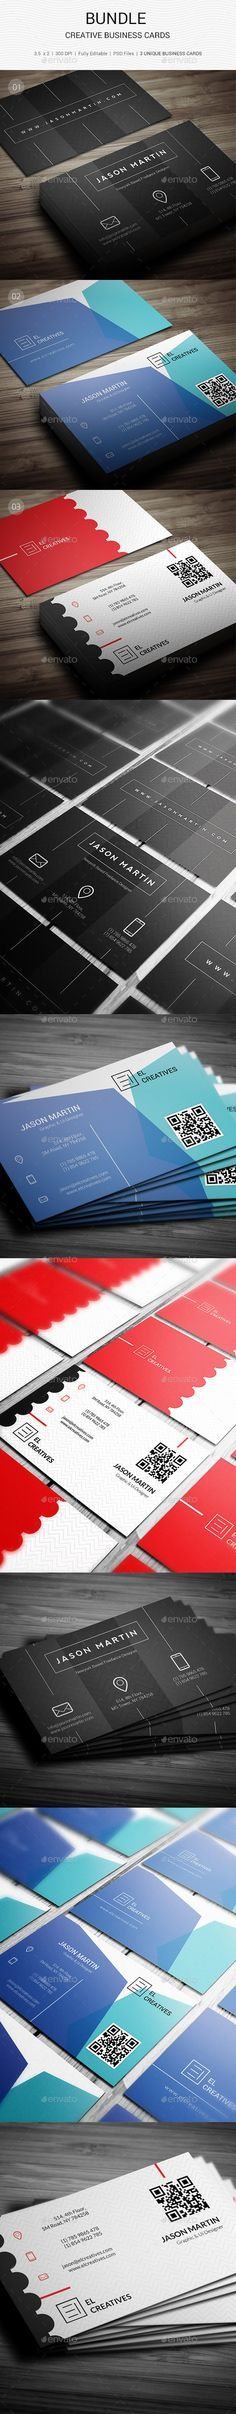 Bundle - Creative Business Cards Template #design Download: http://graphicriver.net/item/bundle-creative-business-cards-136/12165000?ref=ksioks